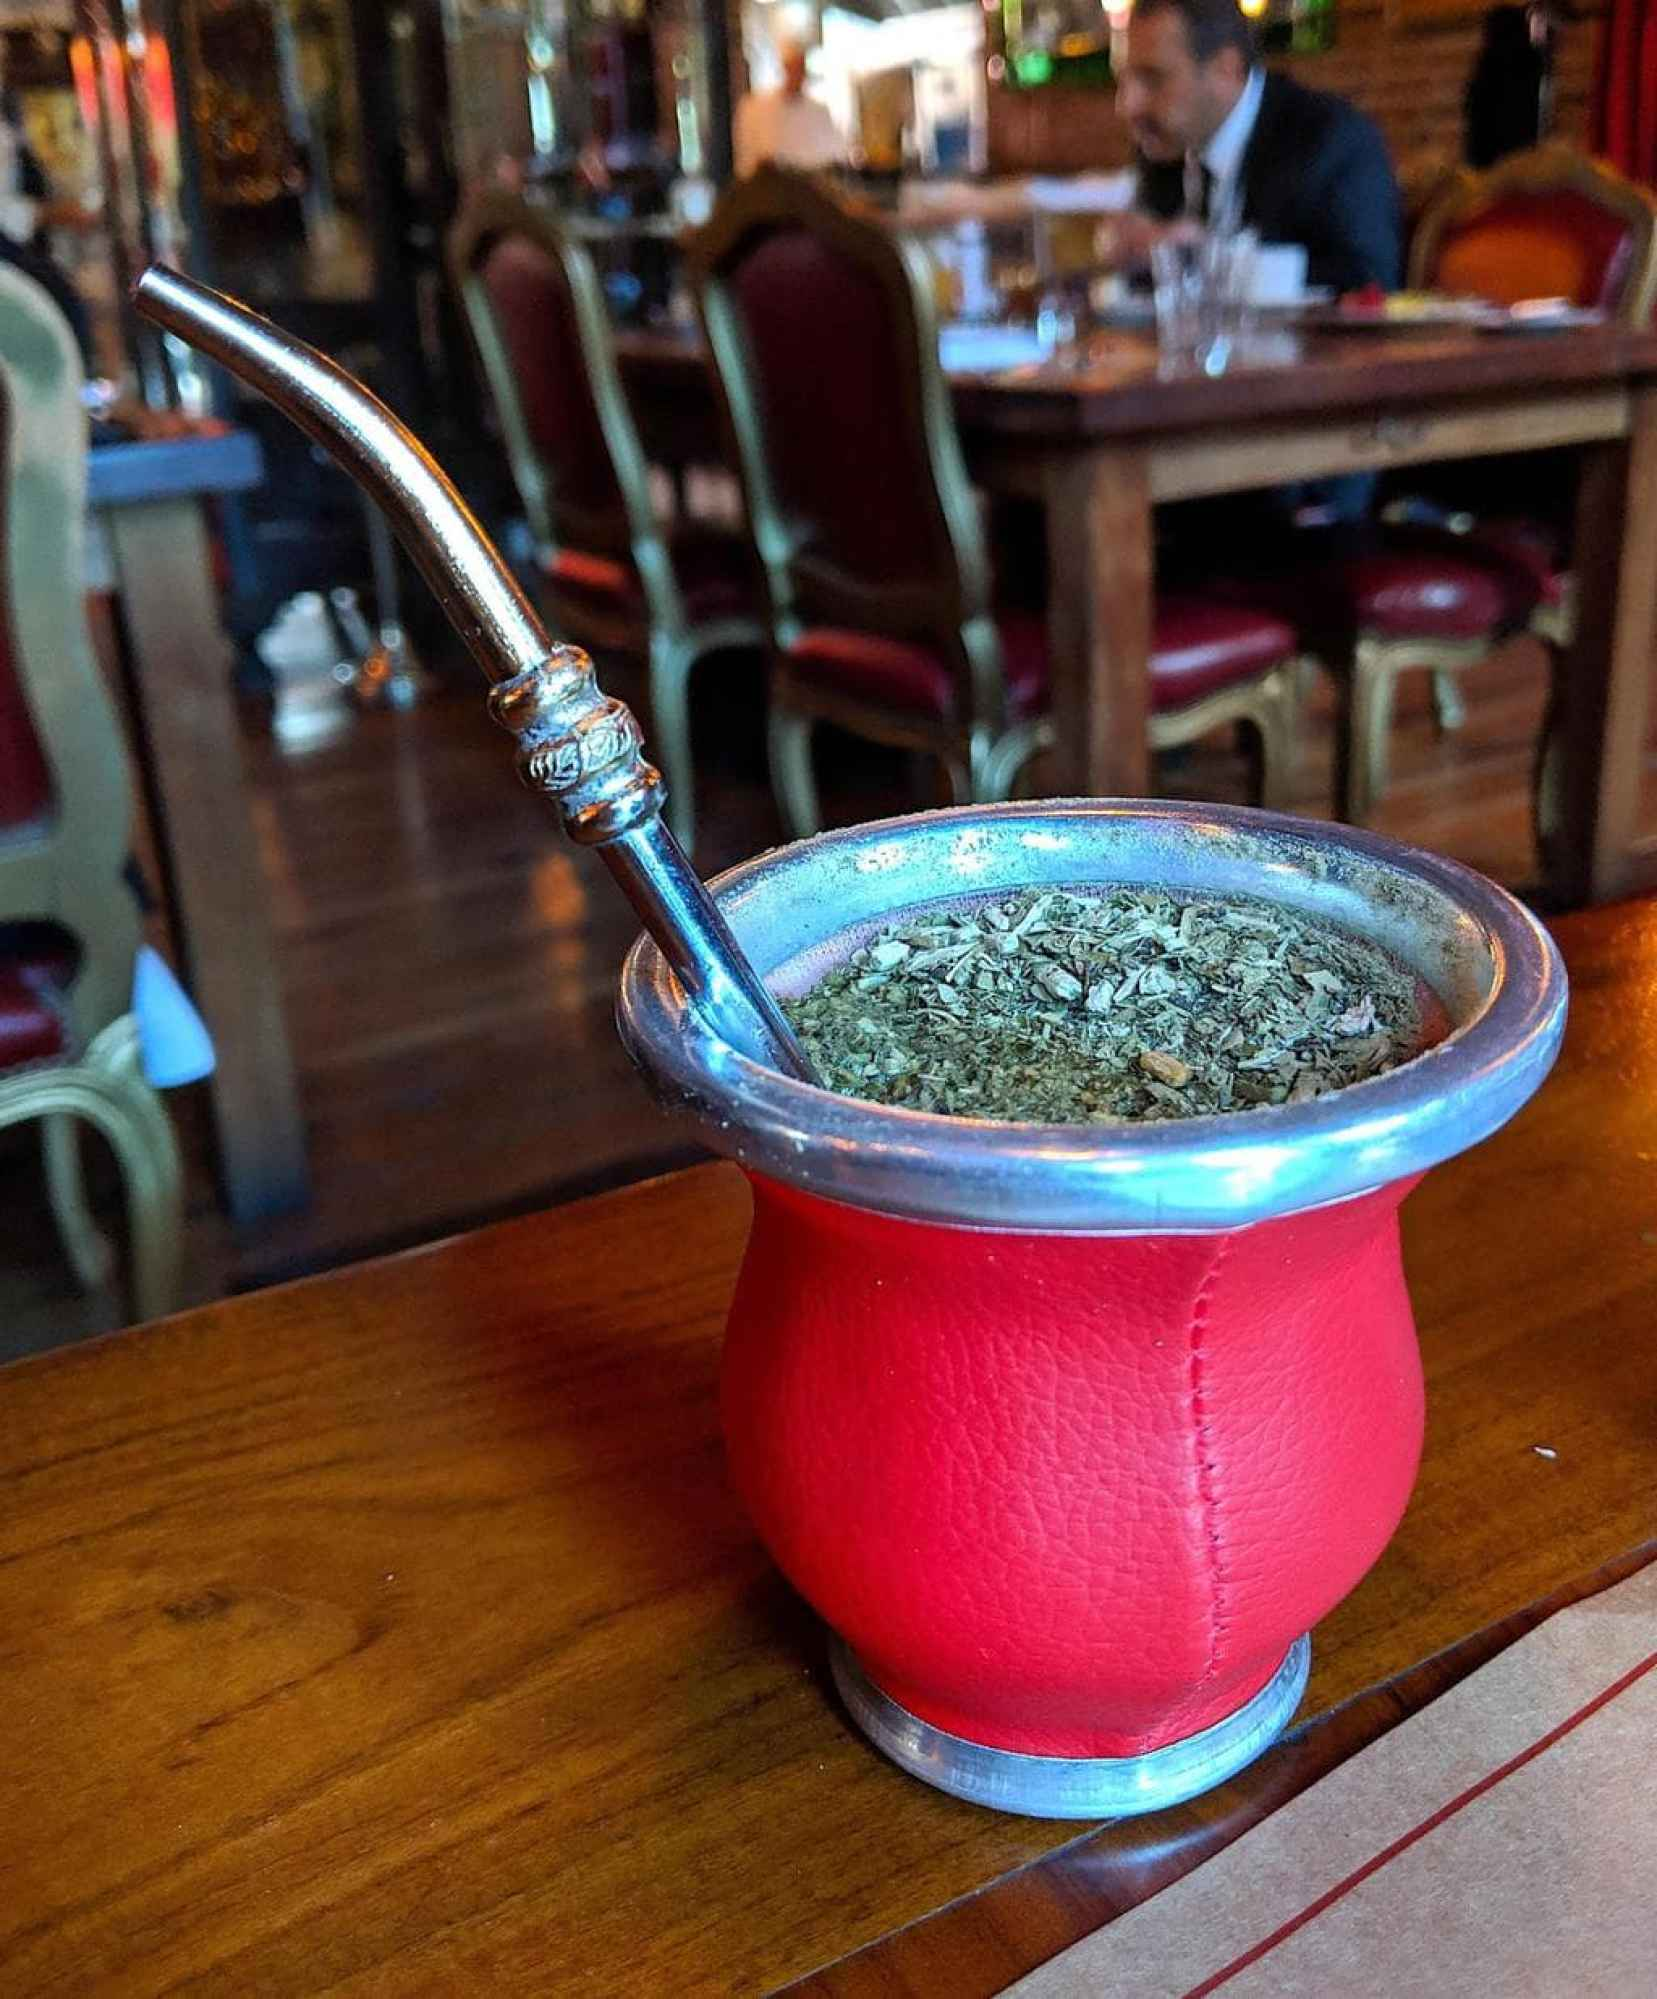 Mate herb, cup and straw